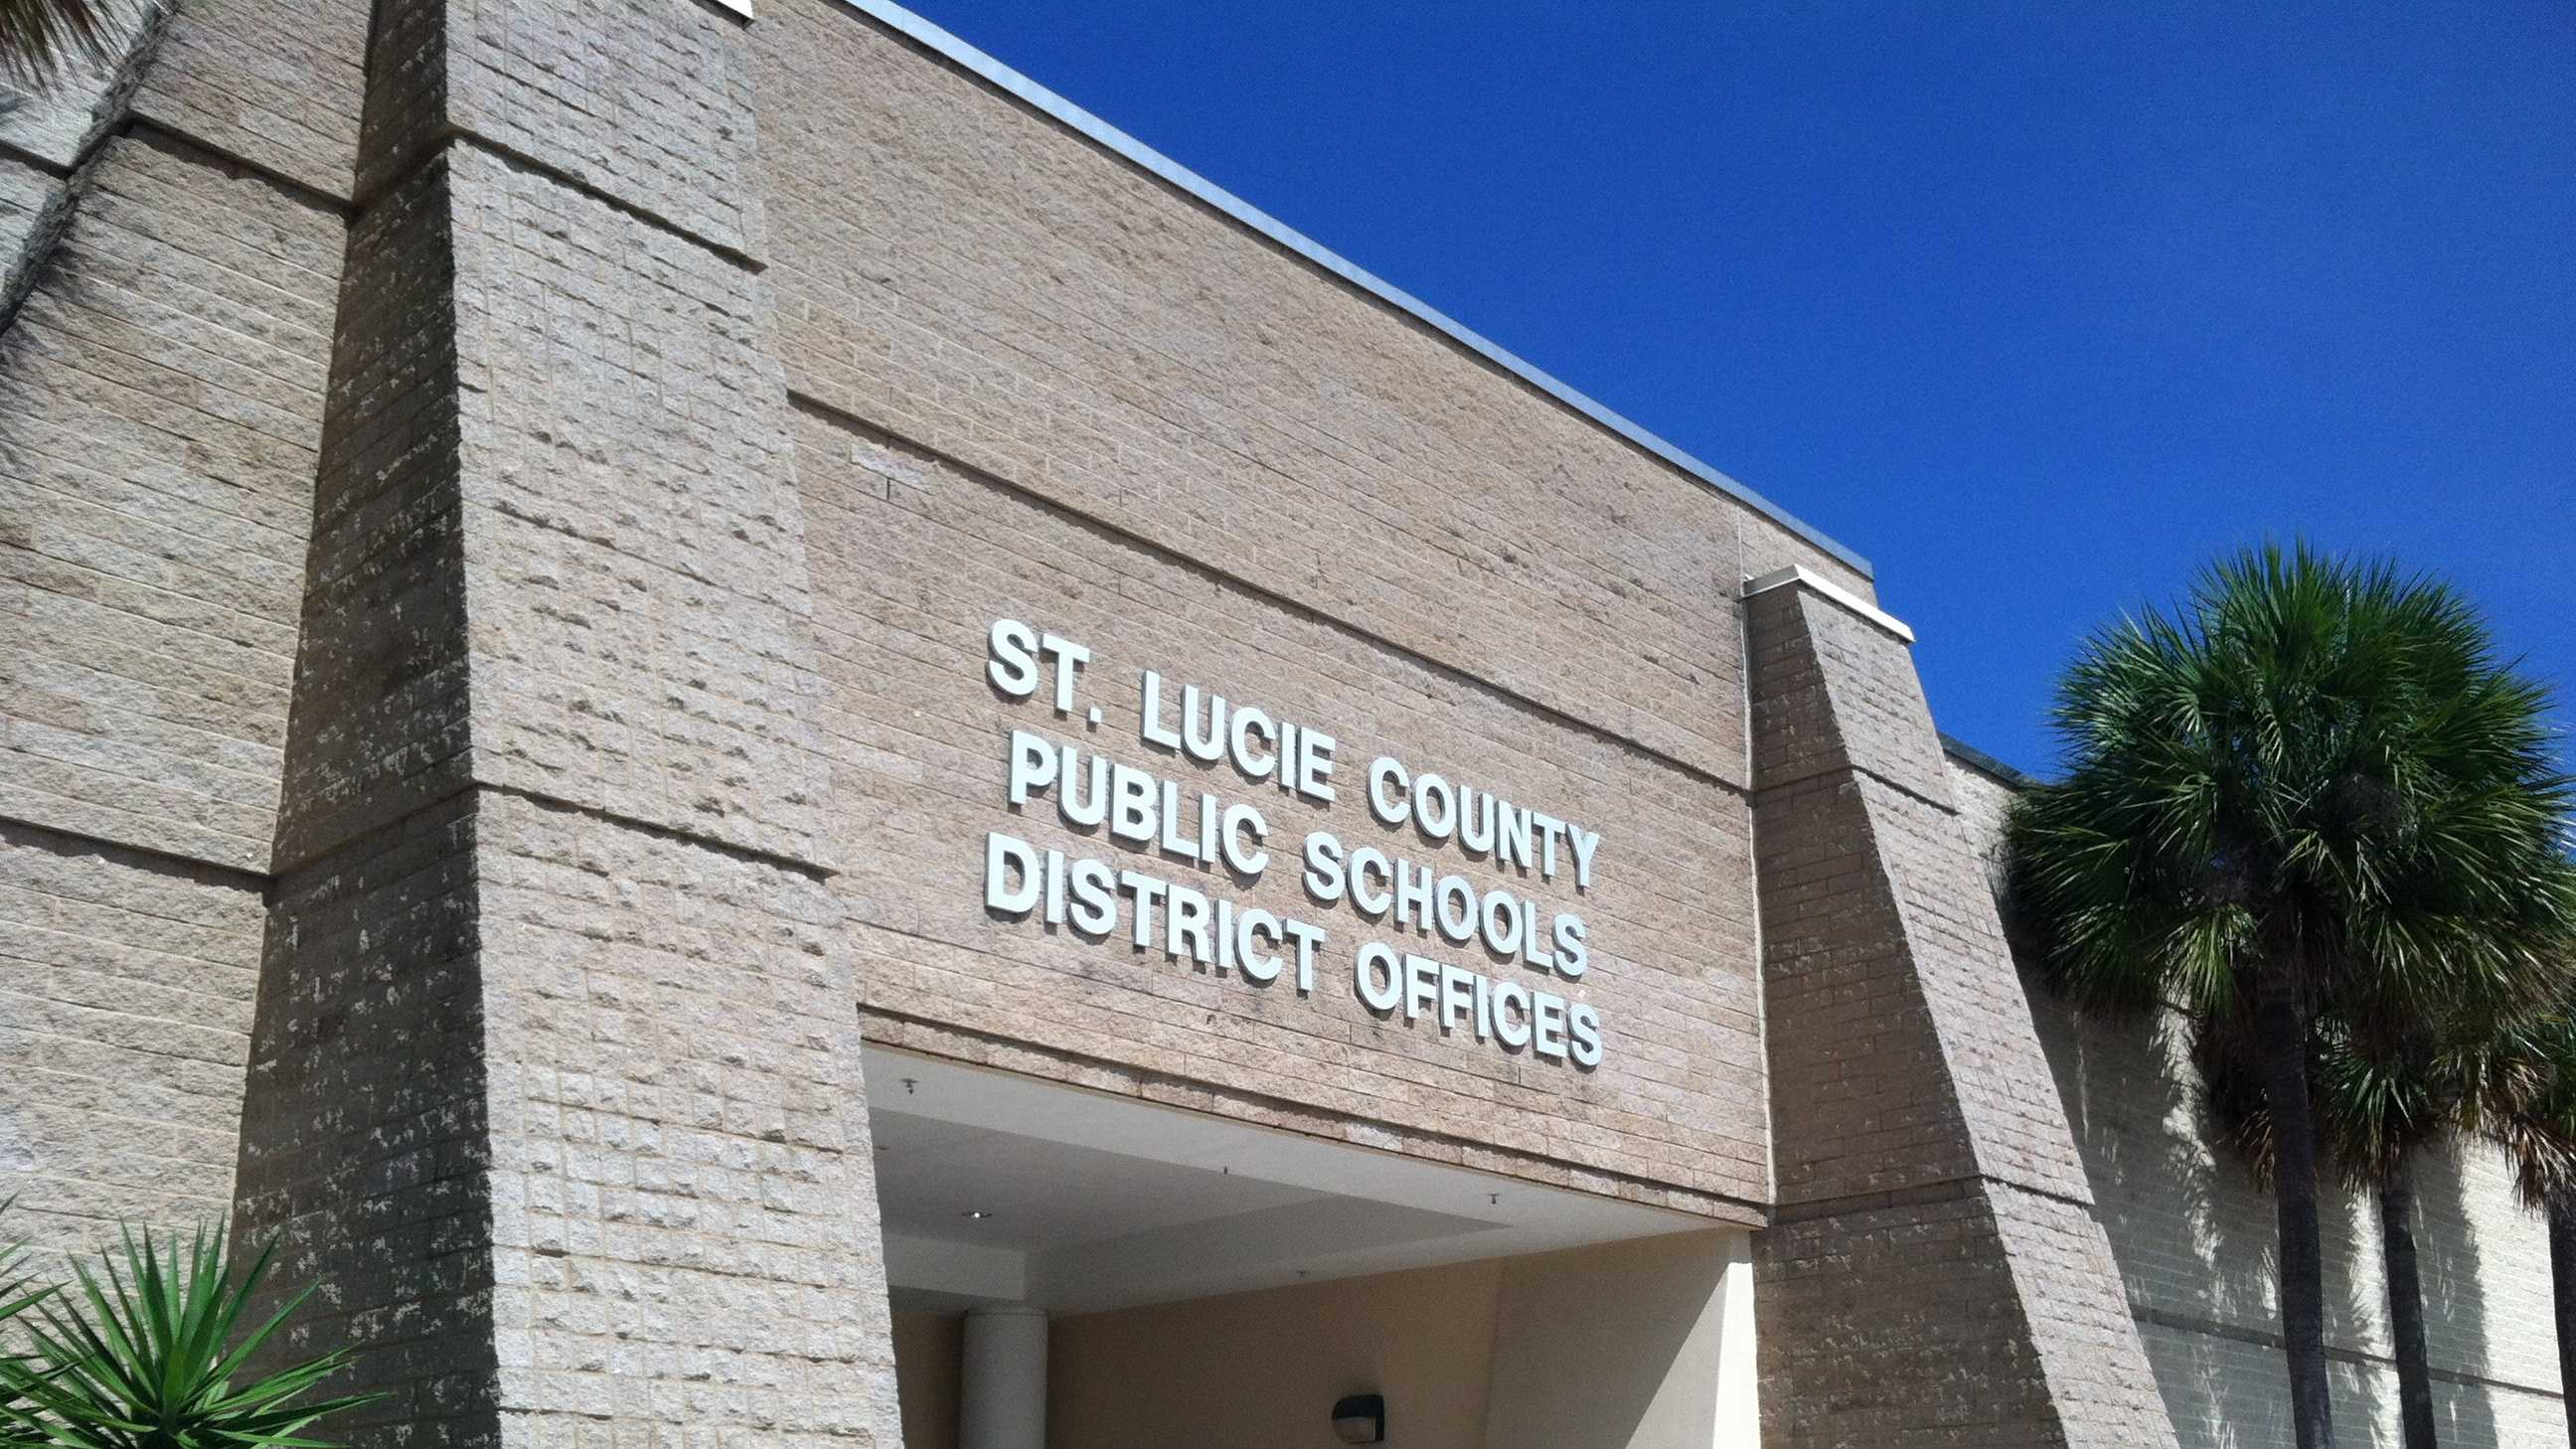 St. Lucie County School District